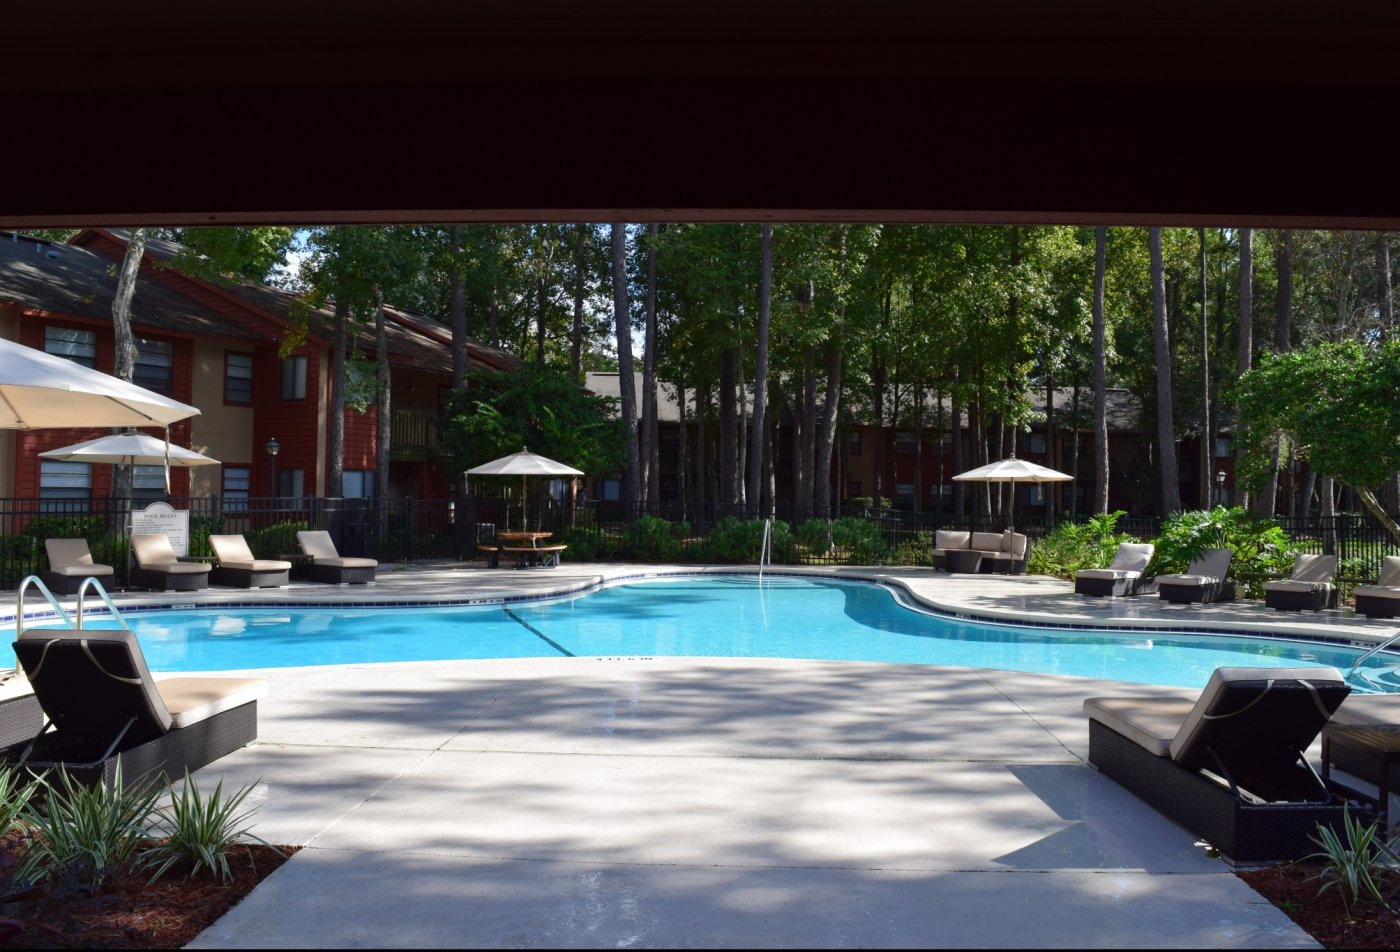 Swimming Pool | Apartment Homes in Jacksonville, FL | Deerfield Apartments